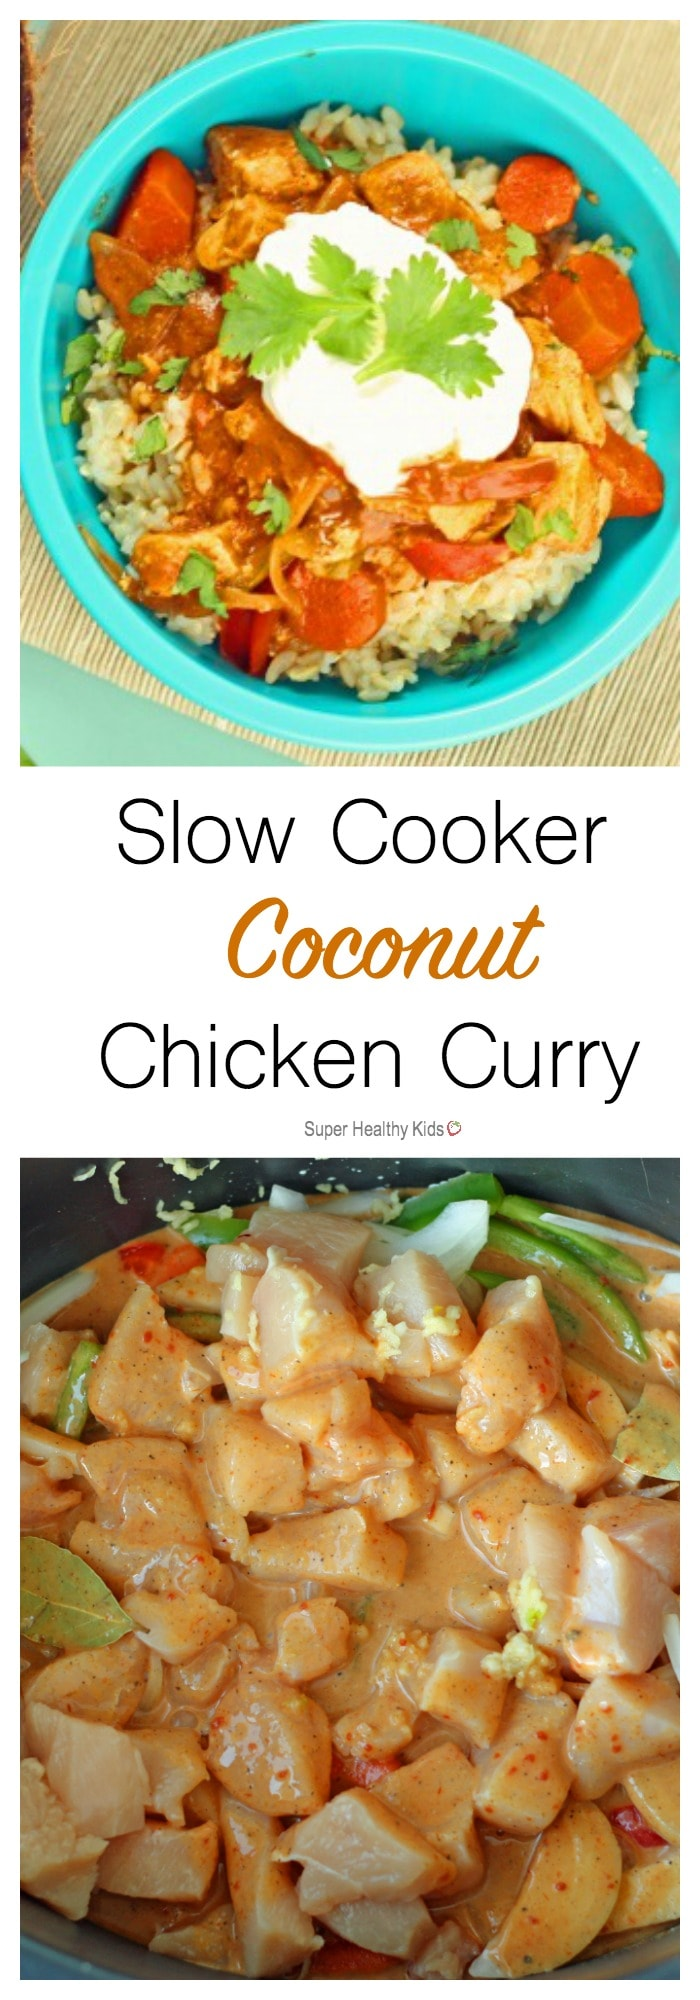 Slow Cooker Coconut Chicken Curry Recipe. Slow cooker meal! Perfect for a Sunday! http://www.superhealthykids.com/slow-cooker-coconut-chicken-curry/